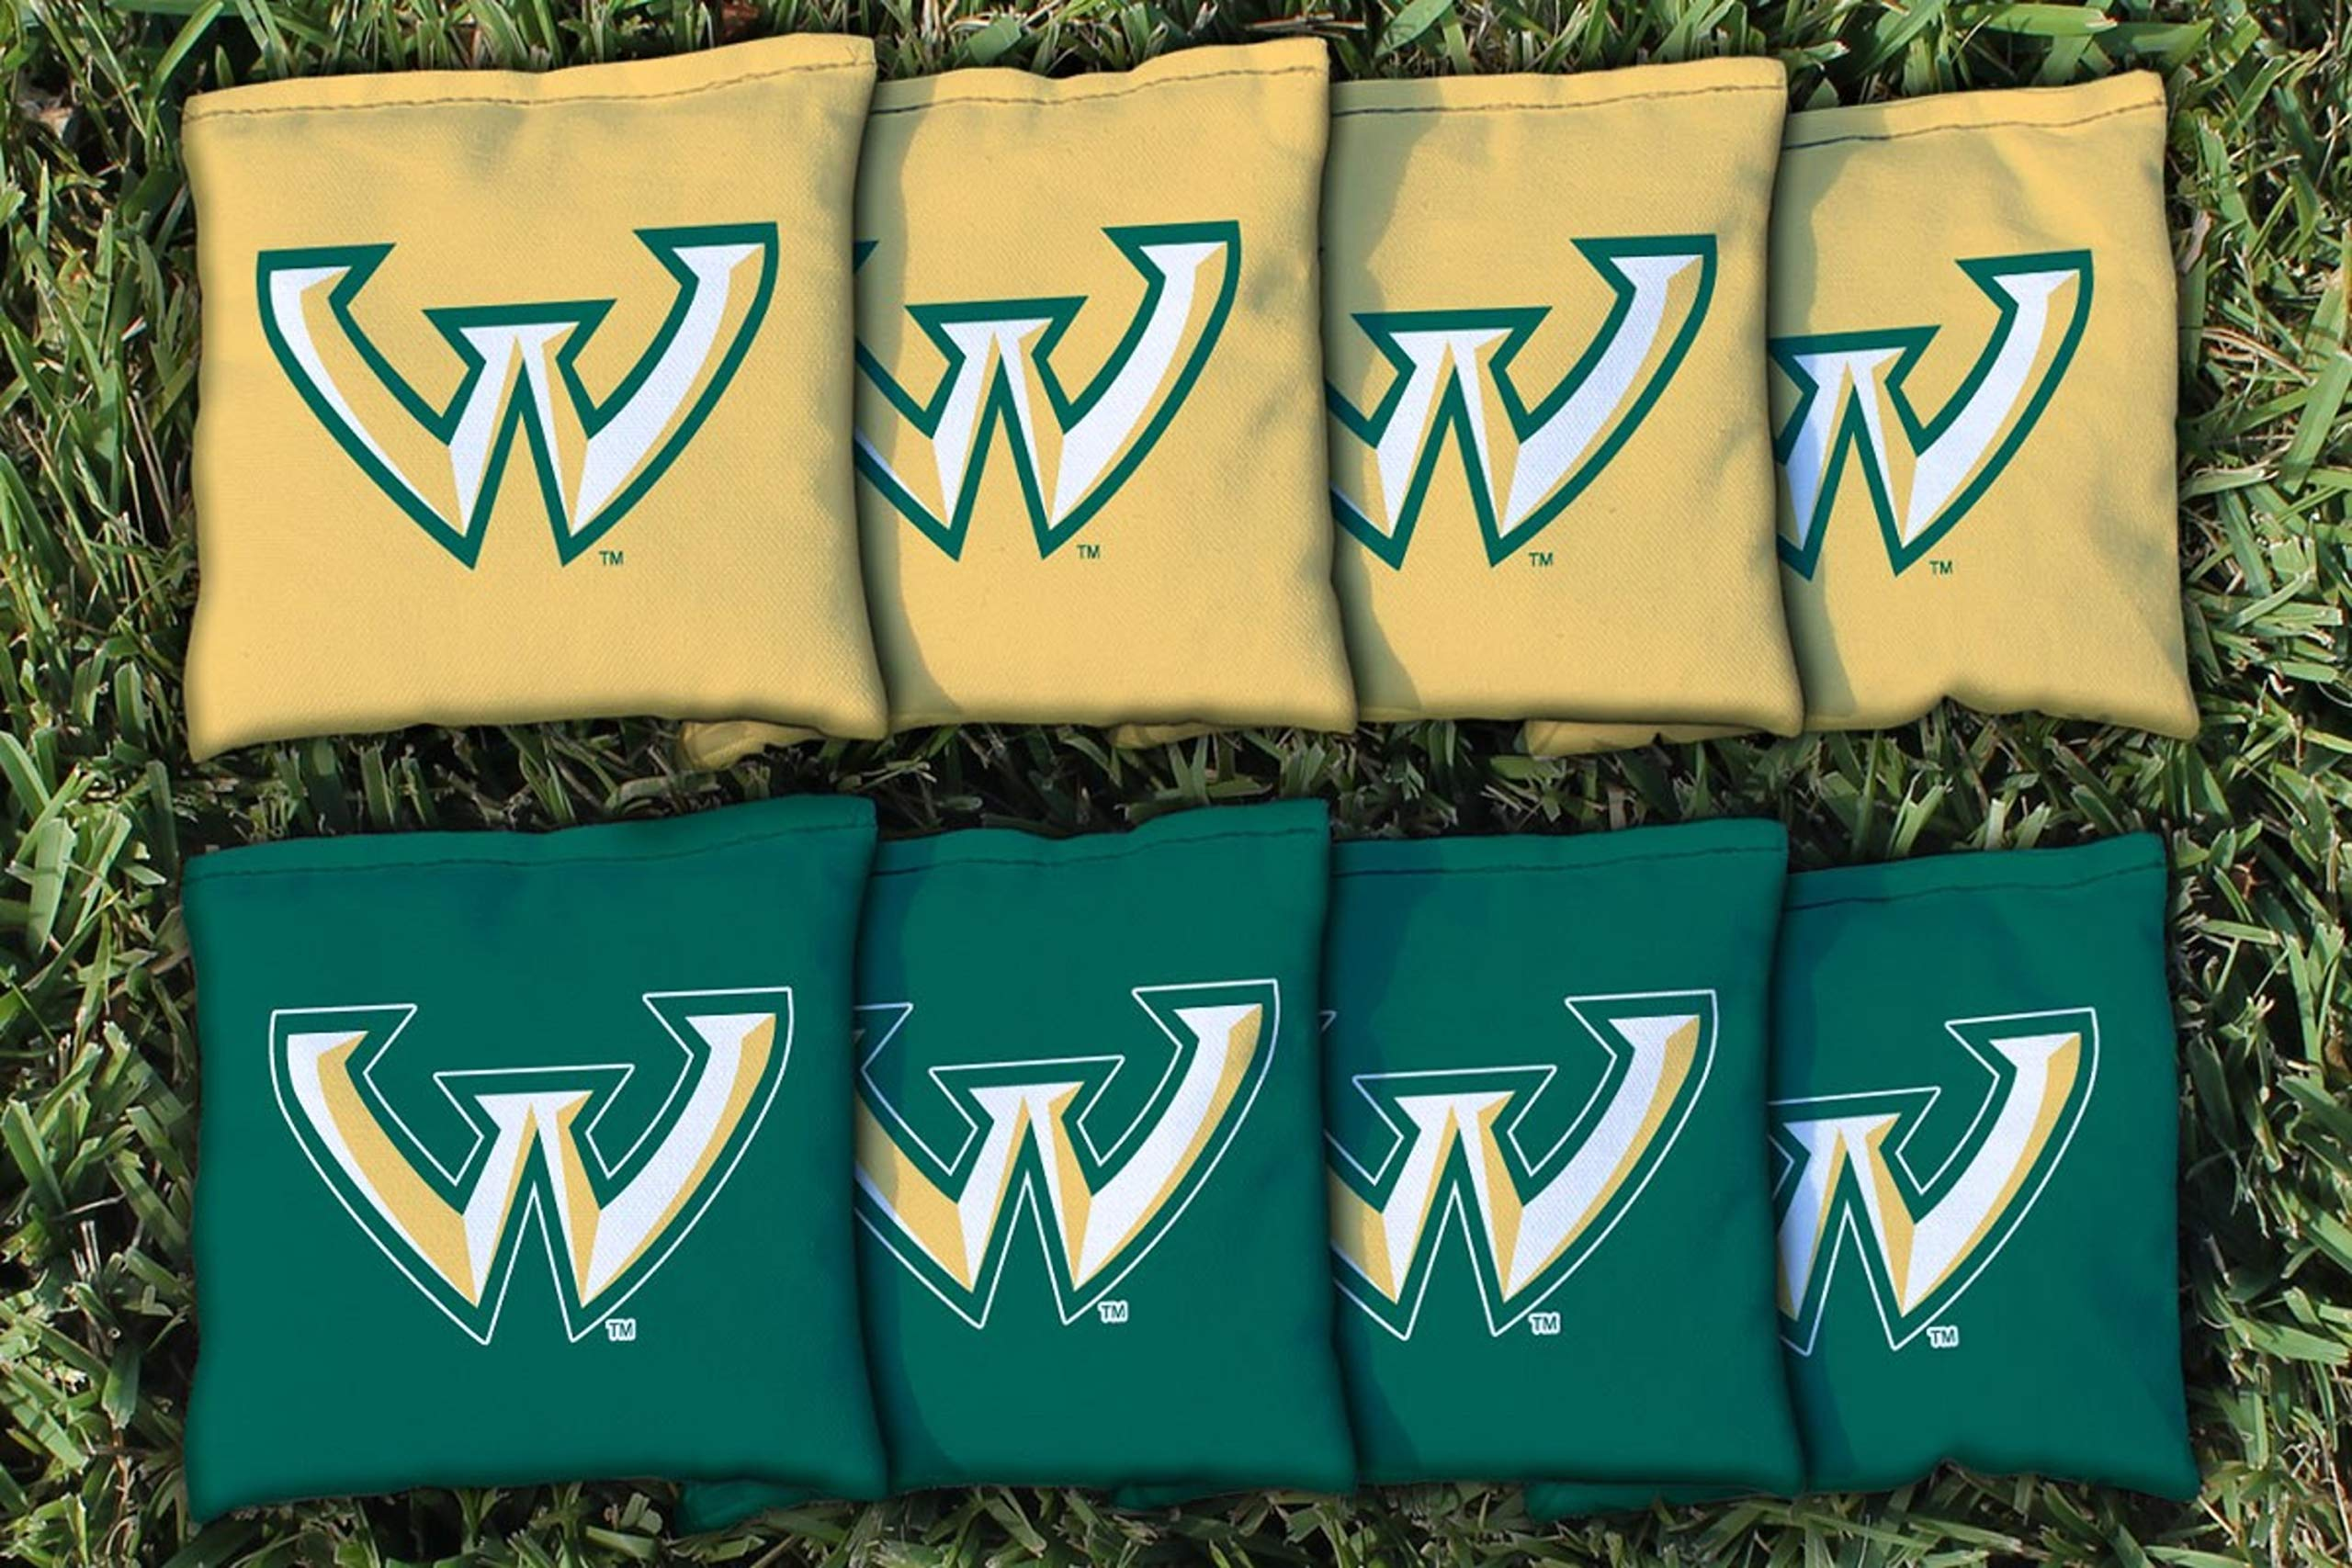 Victory Tailgate NCAA Collegiate Regulation Cornhole Game Bag Set (8 Bags Included, Corn-Filled) - Wayne State University Warriors by Victory Tailgate